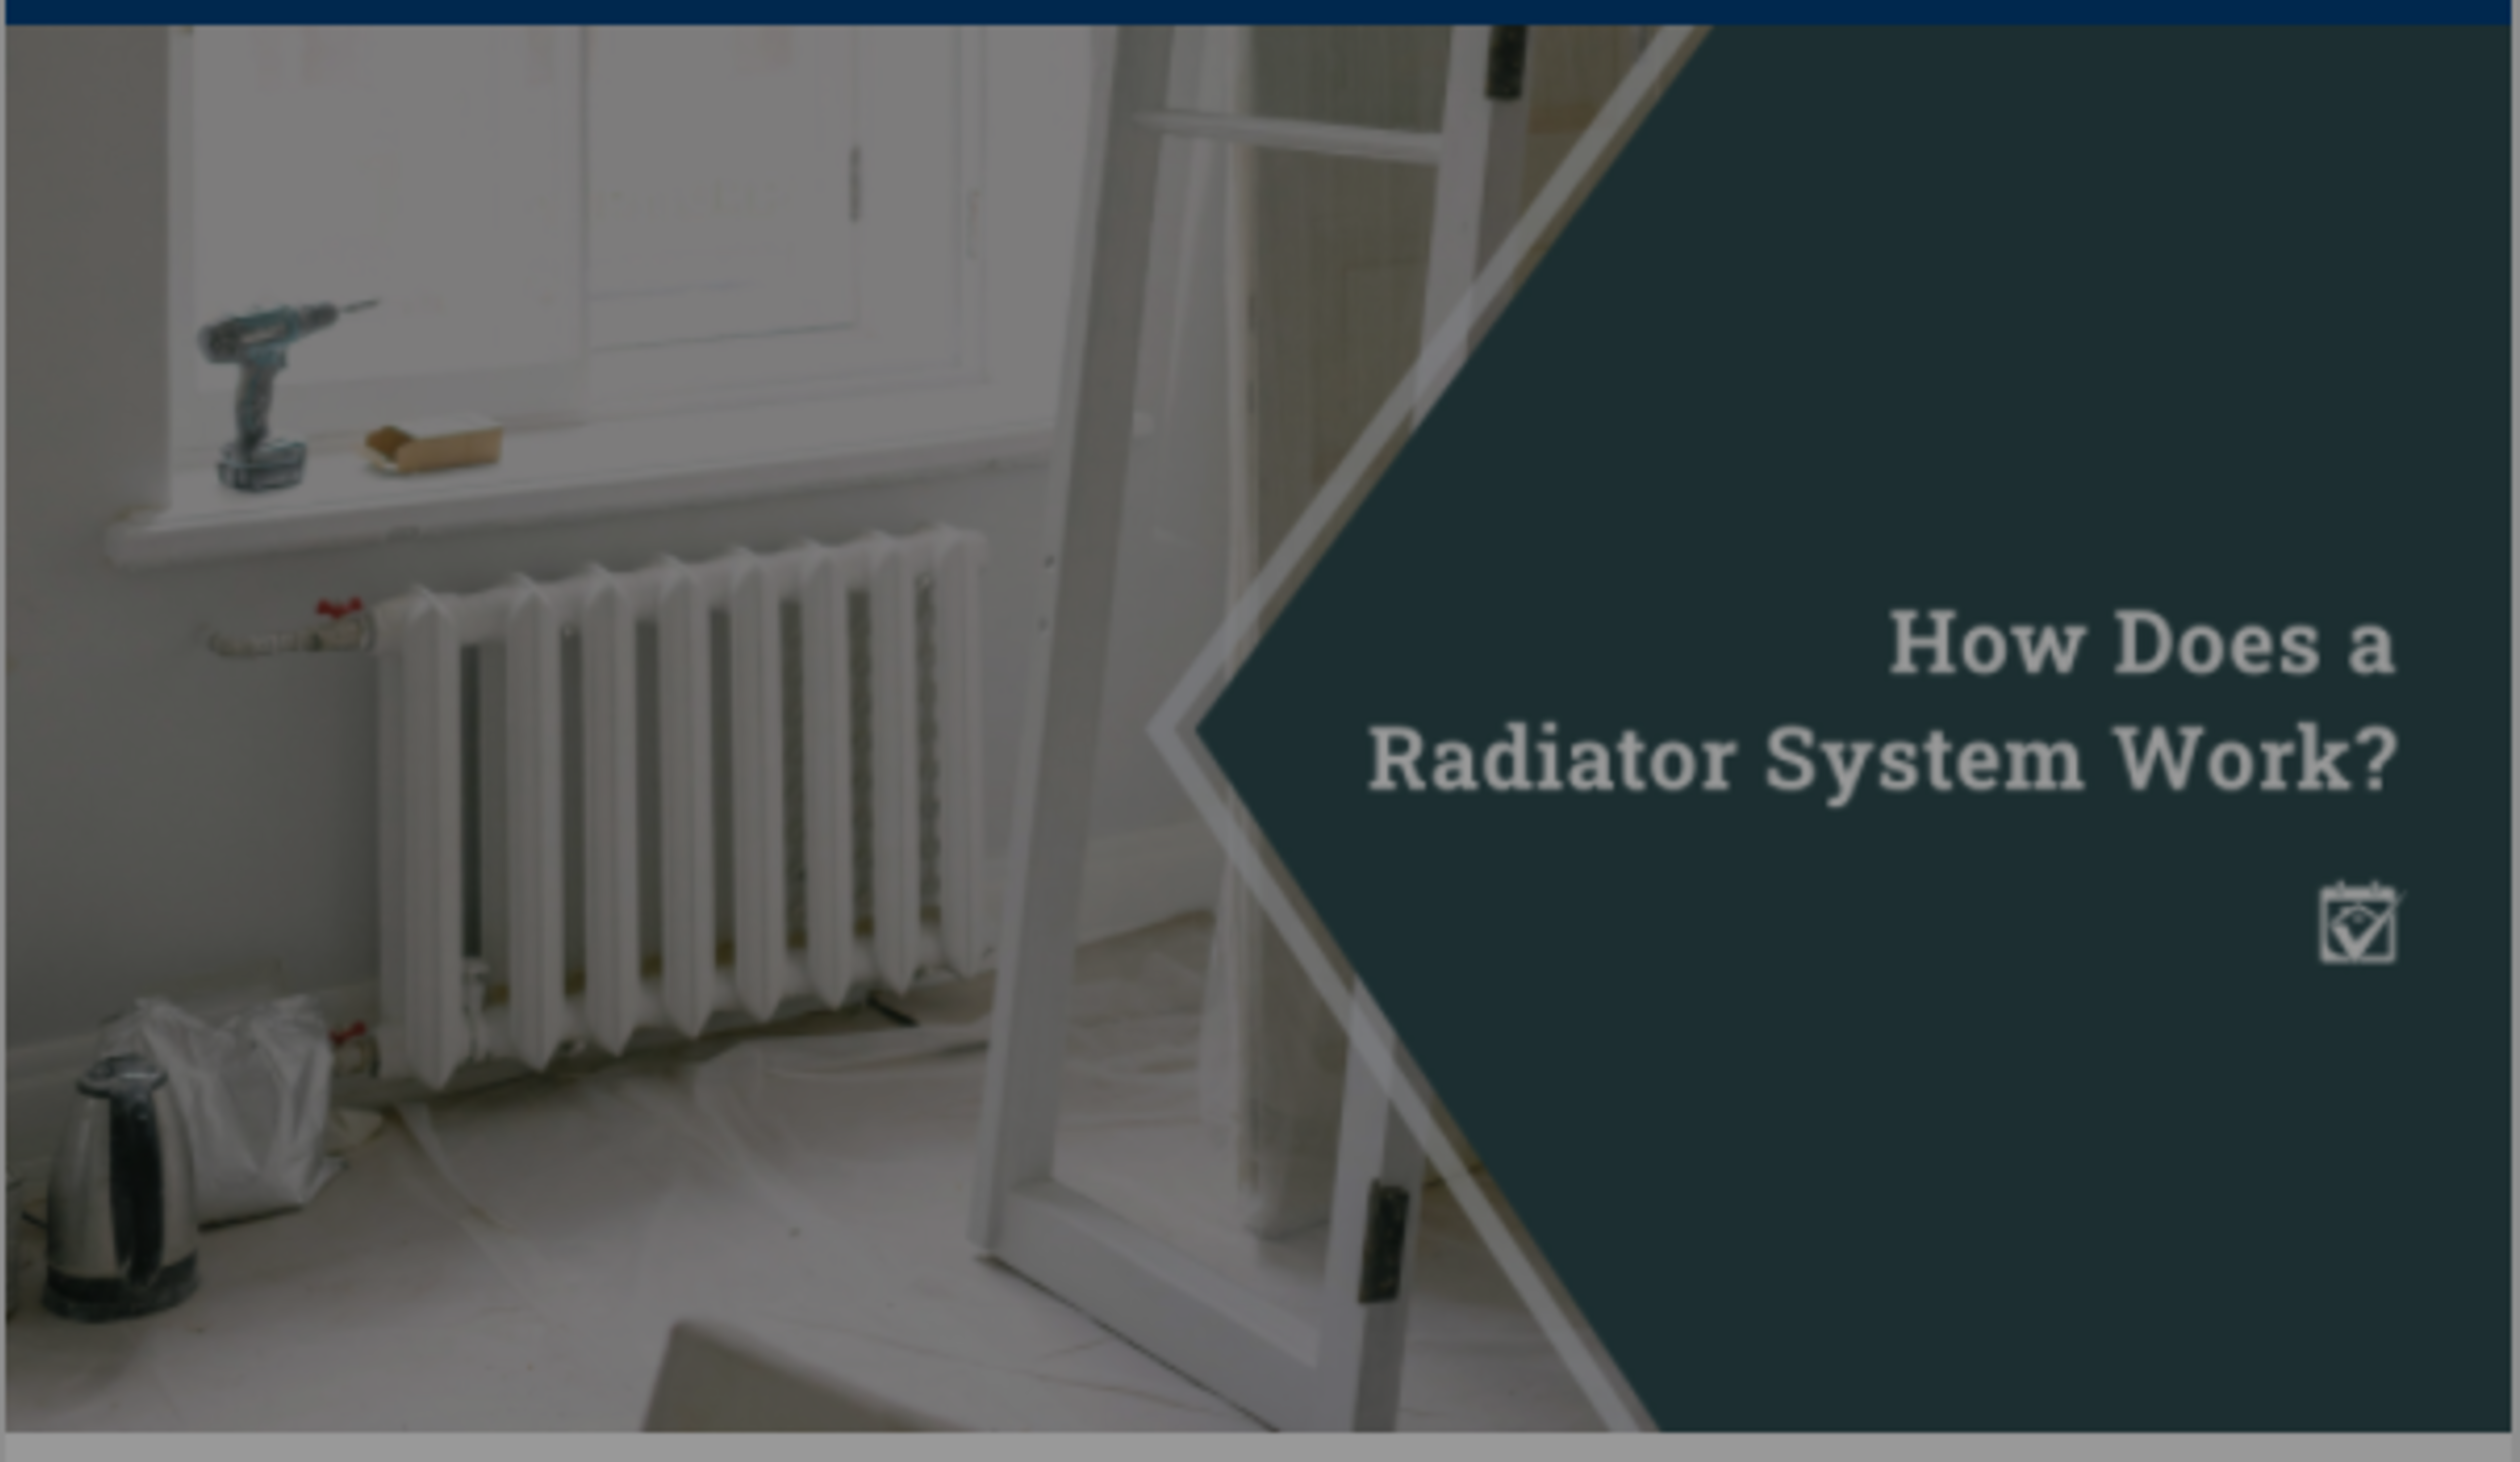 How Does a Radiator System Work?